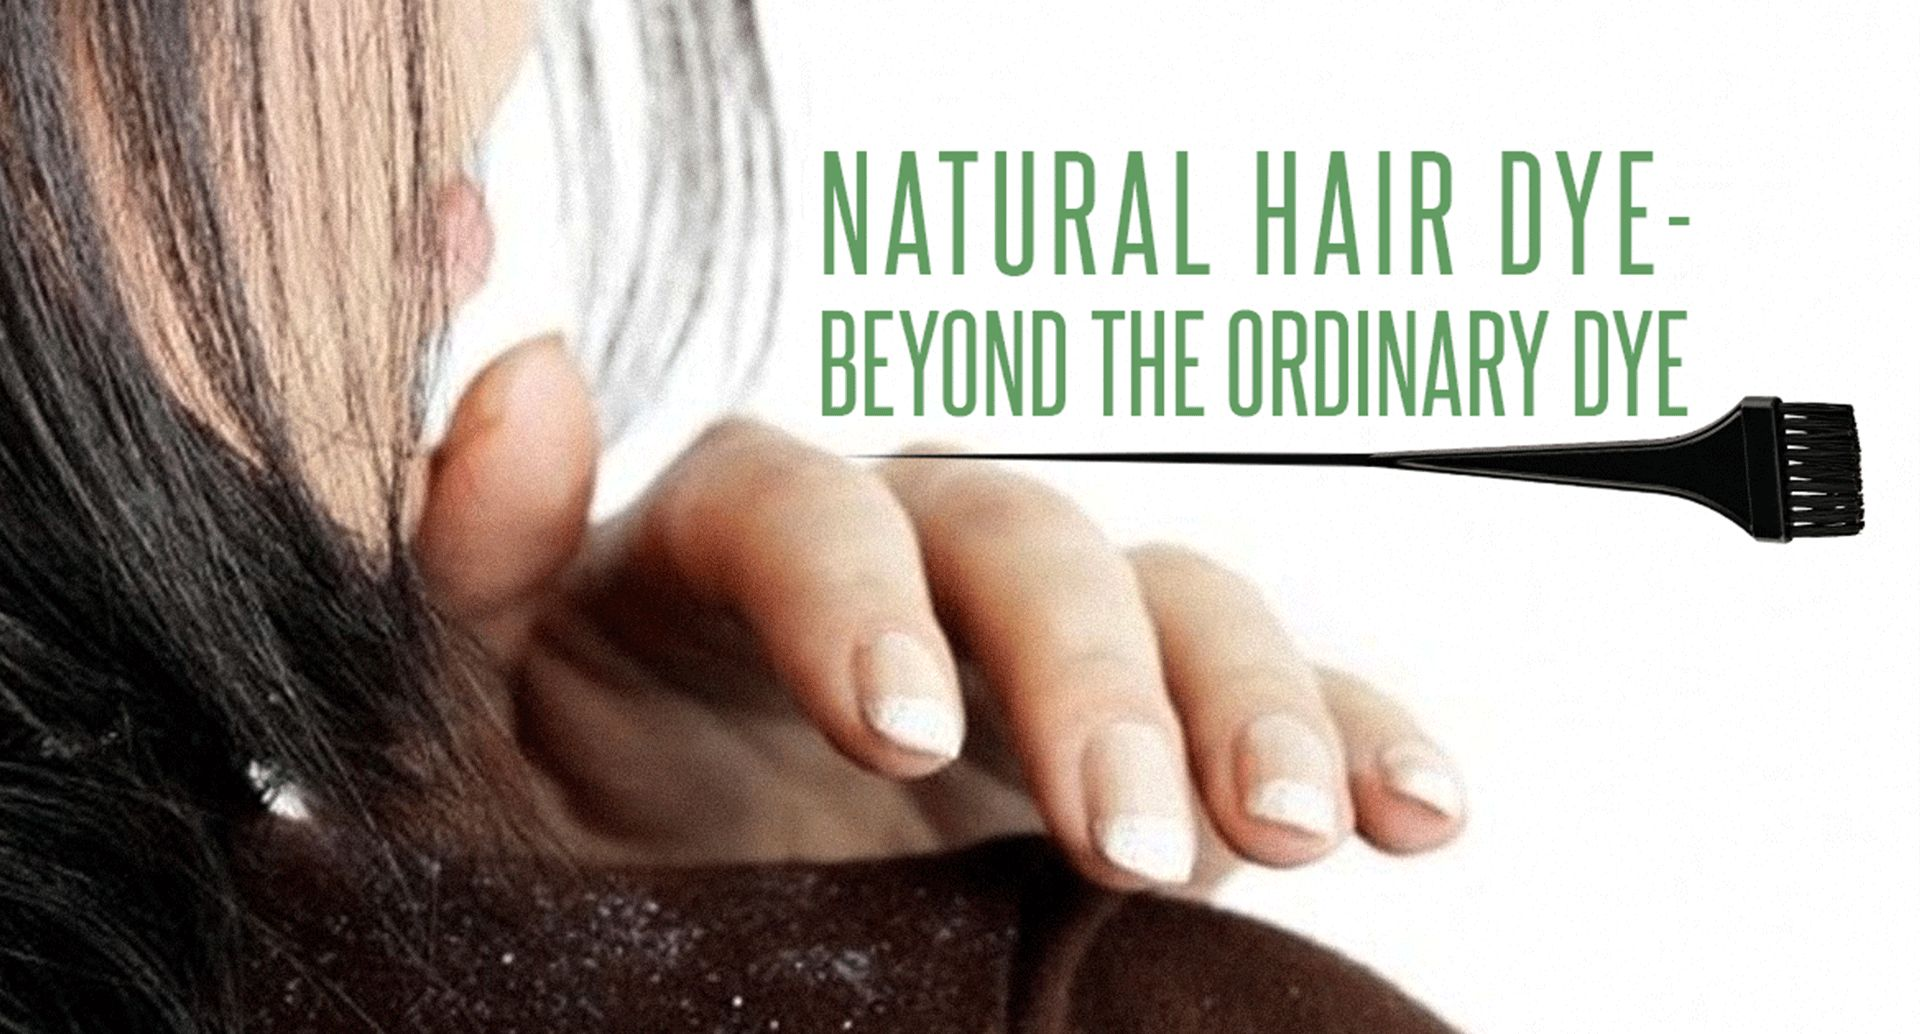 Natural hair dye (fruit based)-Beyond the ordinary dye